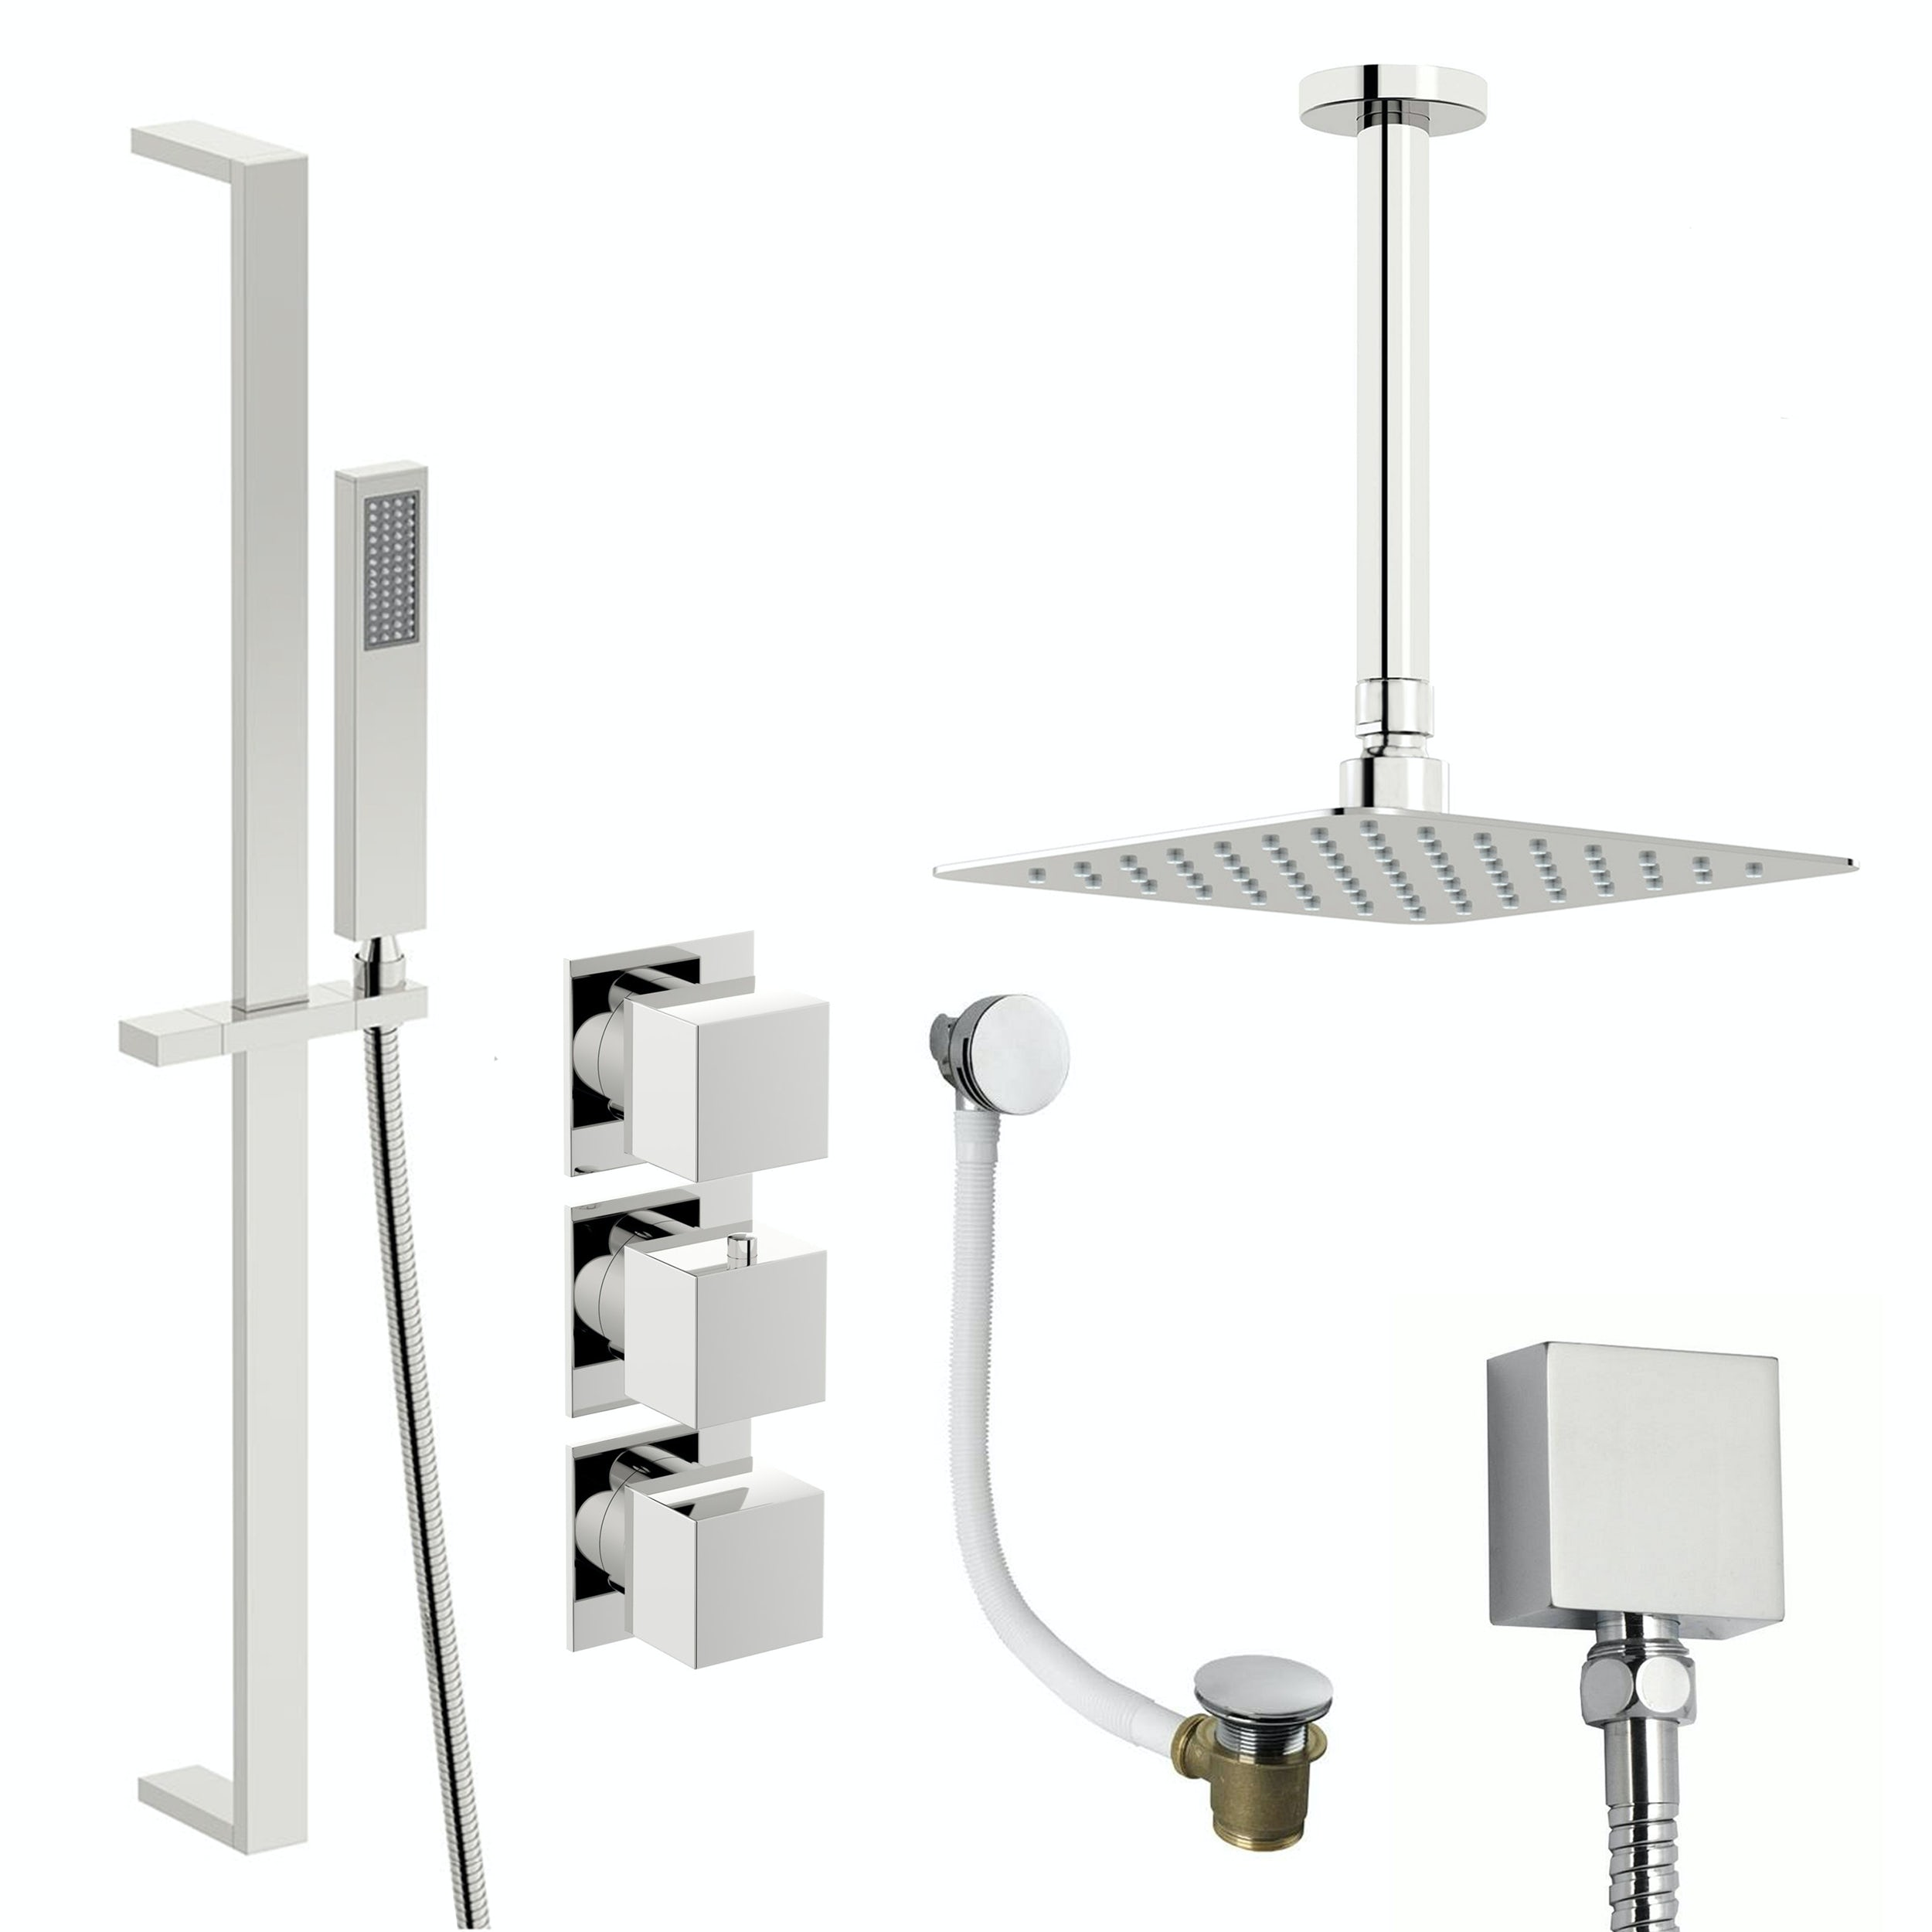 Mode Cooper thermostatic shower valve with complete ceiling shower bath set